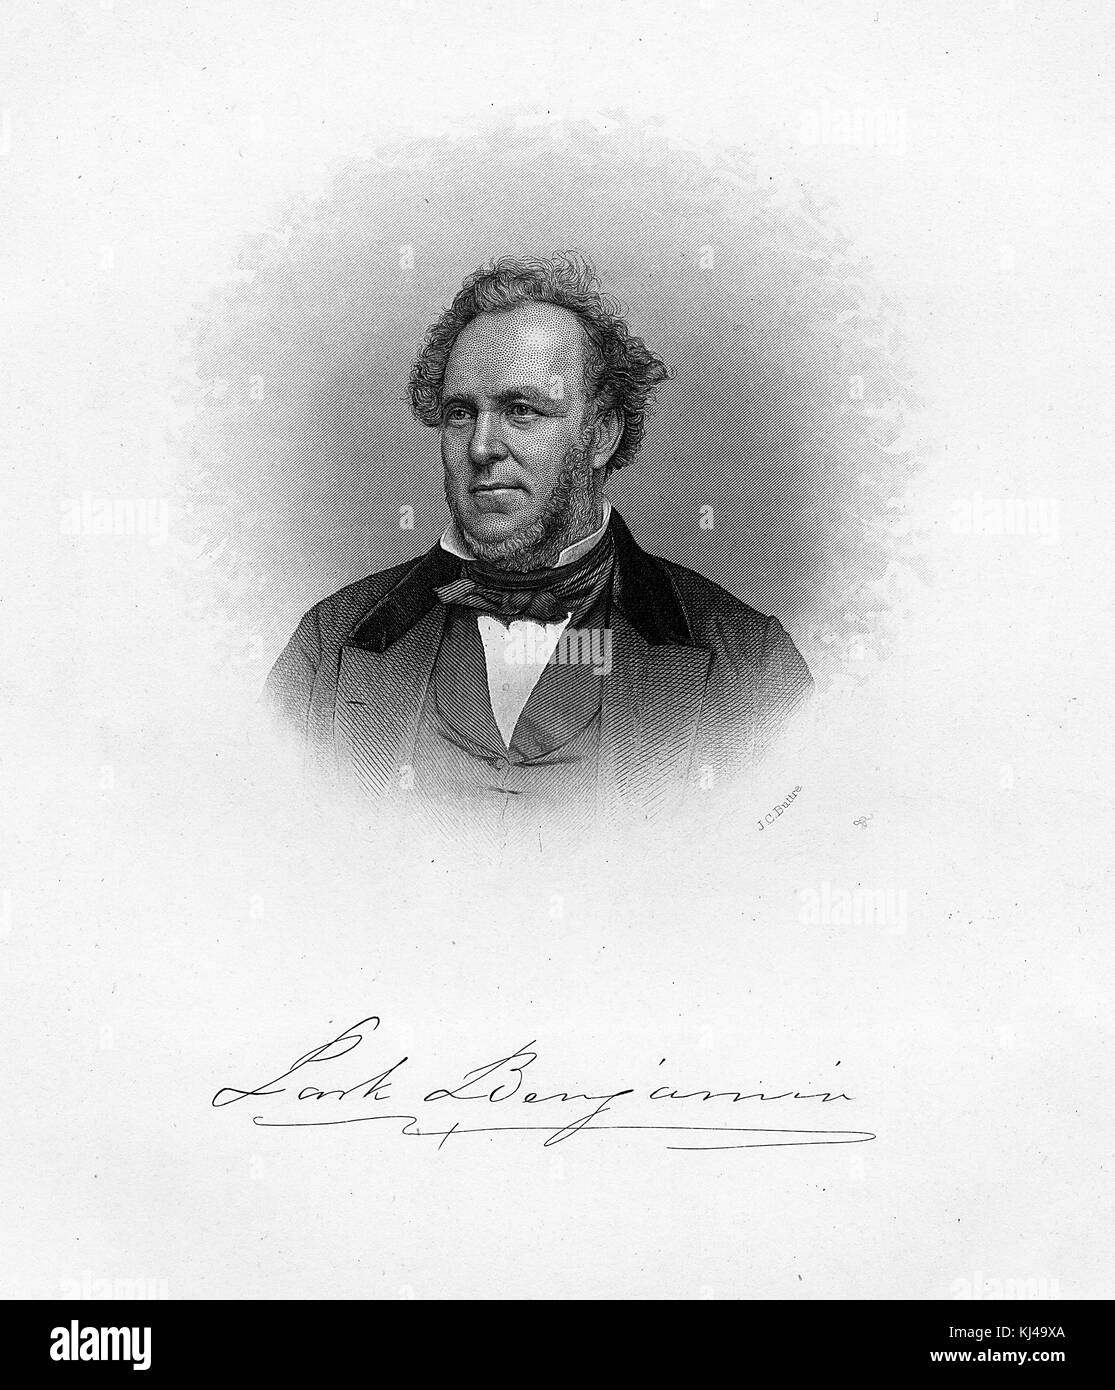 Engraved portrait of Park Benjamin, American poet, journalist, editor and founder of several newspapers, by JC Buttre, - Stock Image